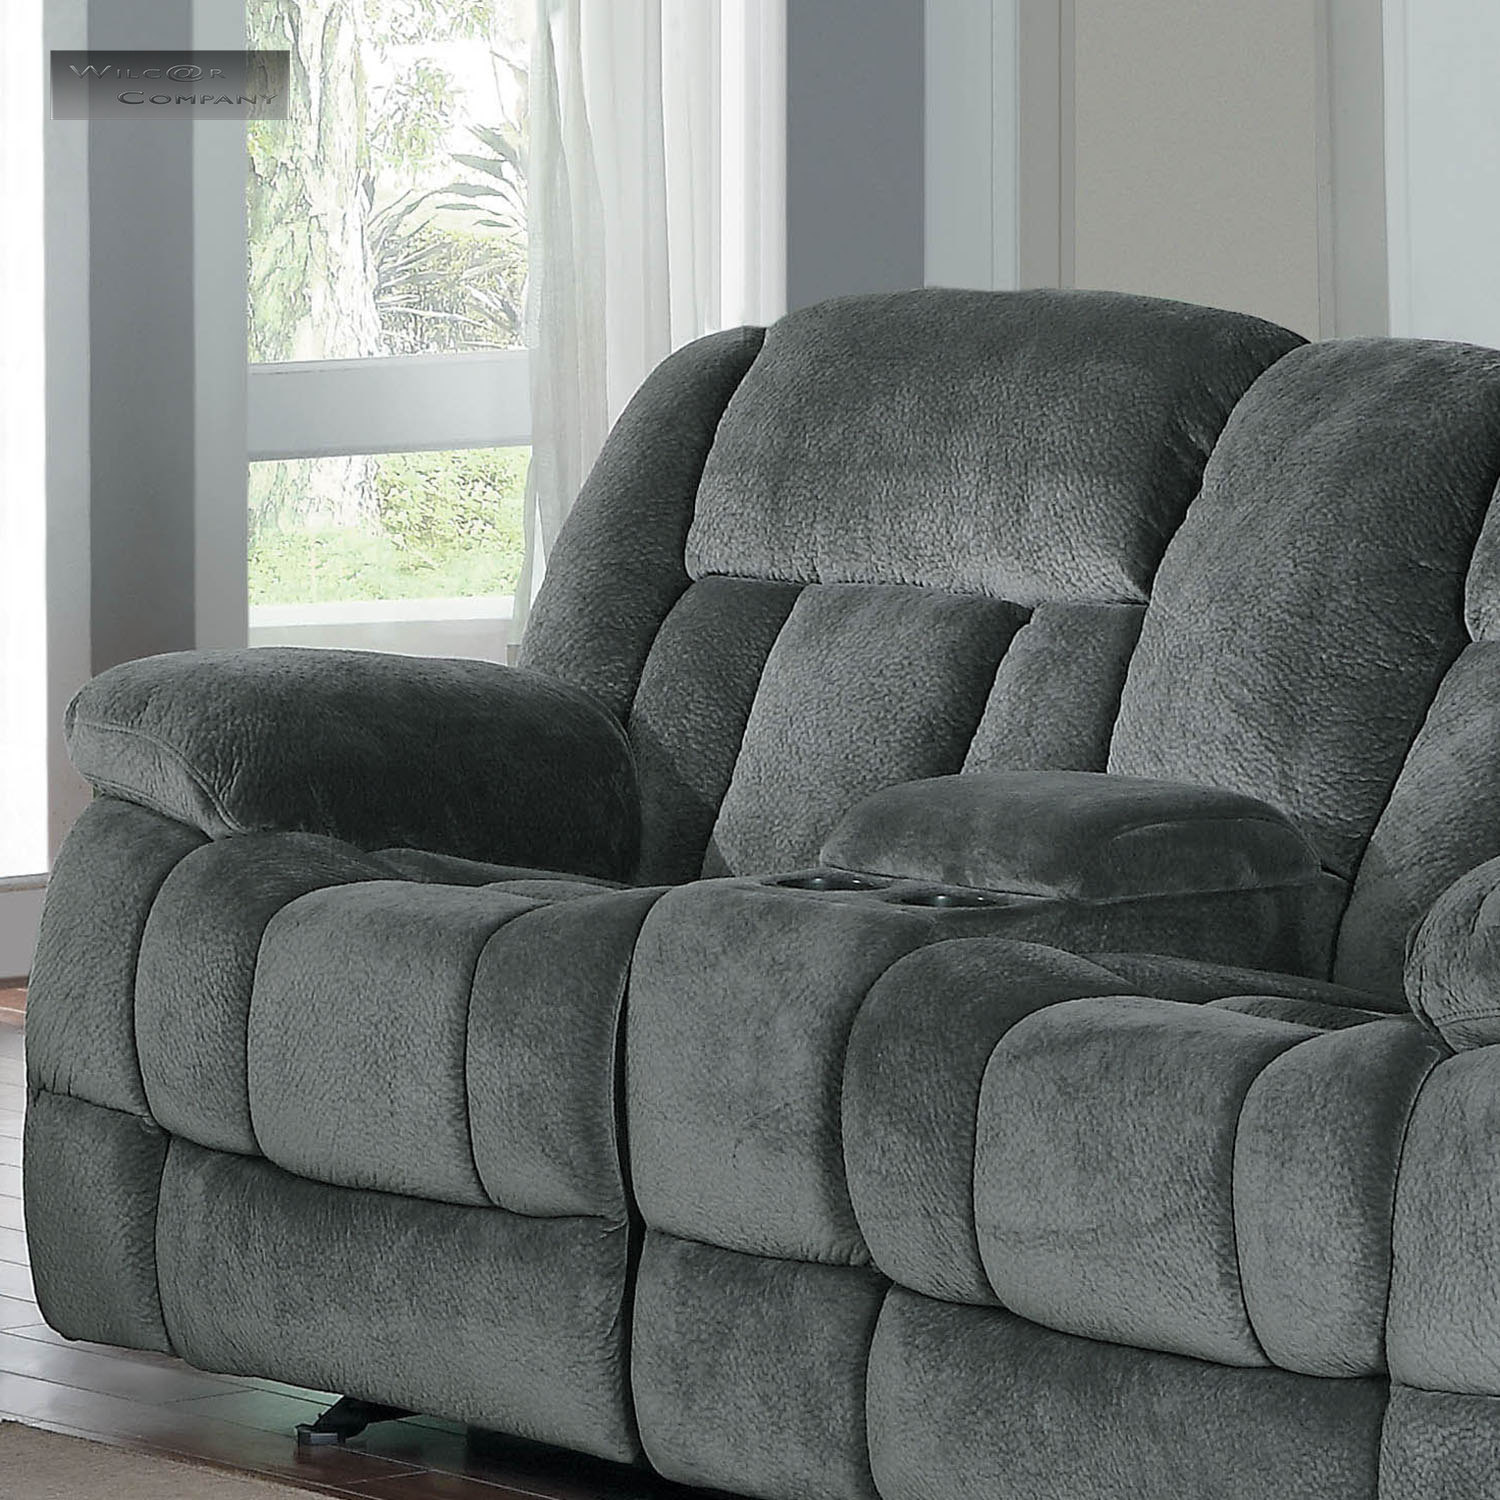 New grey rocker glider double recliner loveseat lazy sofa rocking reclining boy ebay Rocking loveseats